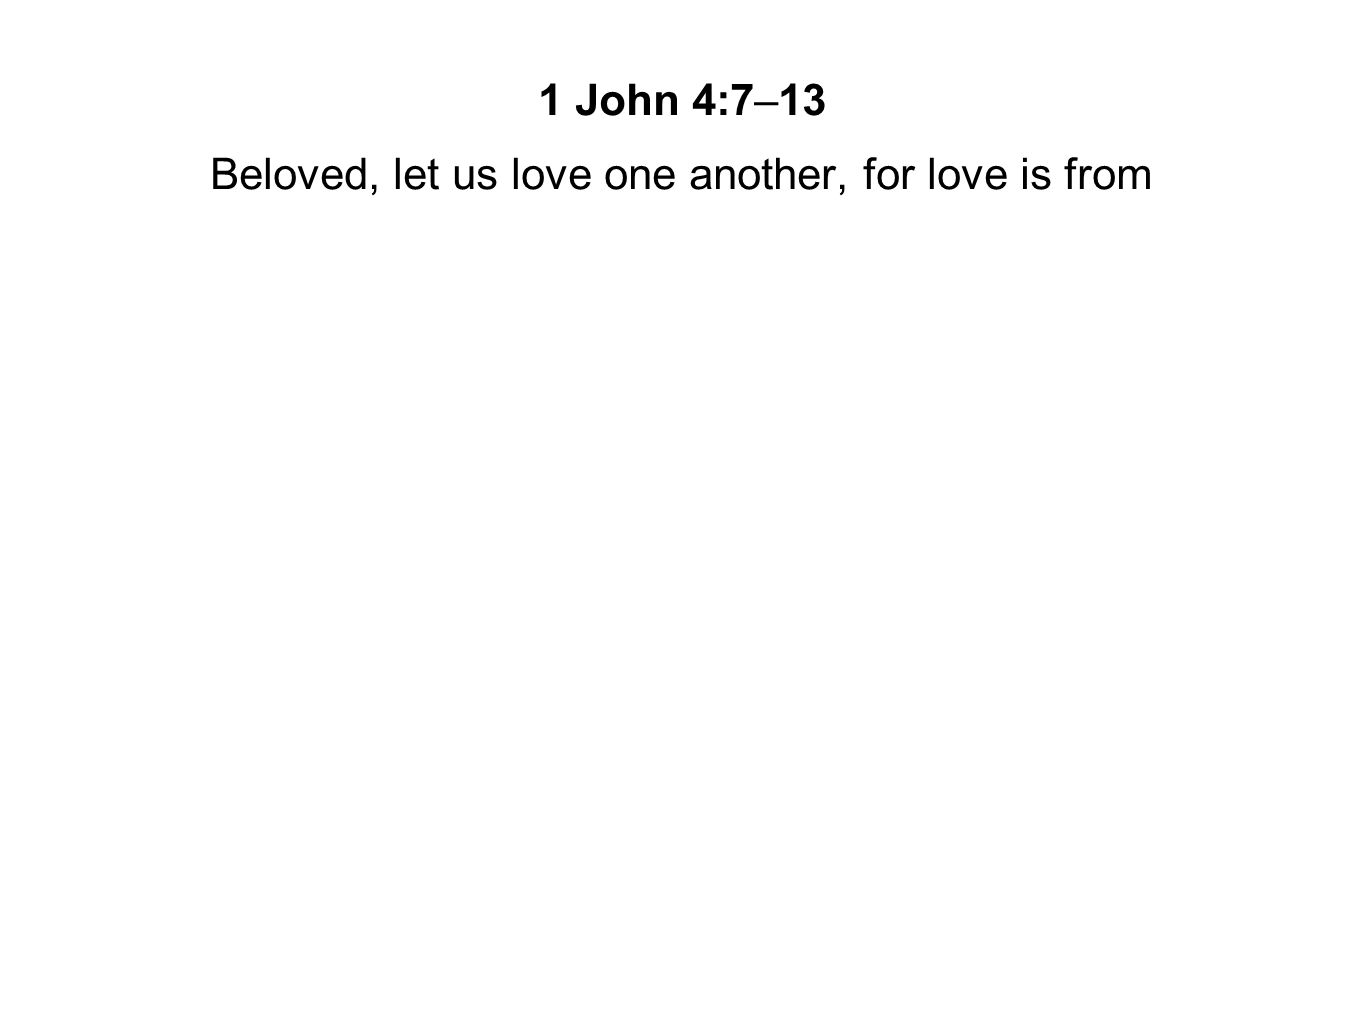 Beloved, let us love one another, for love is from